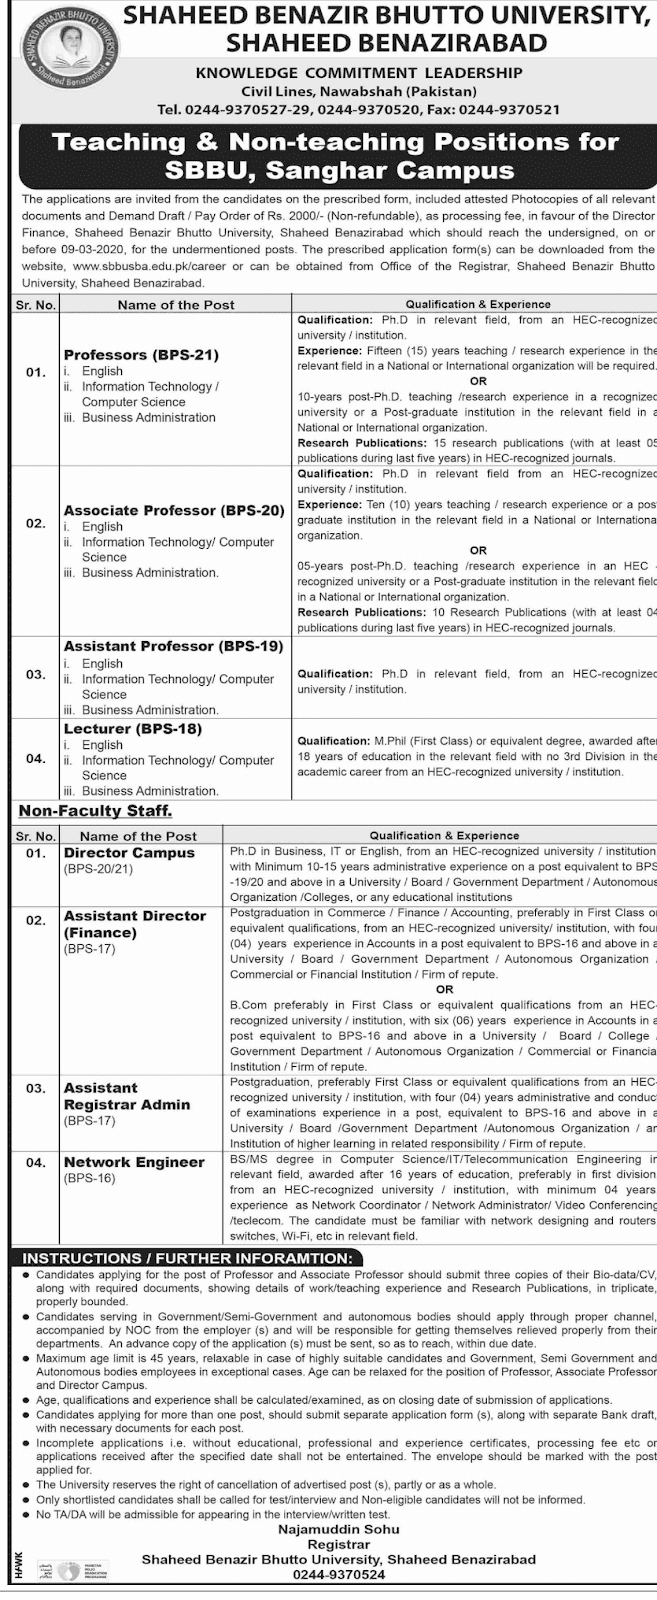 Jobs in Shaheed Benazir Bhutto University Latest Vacancies 2020